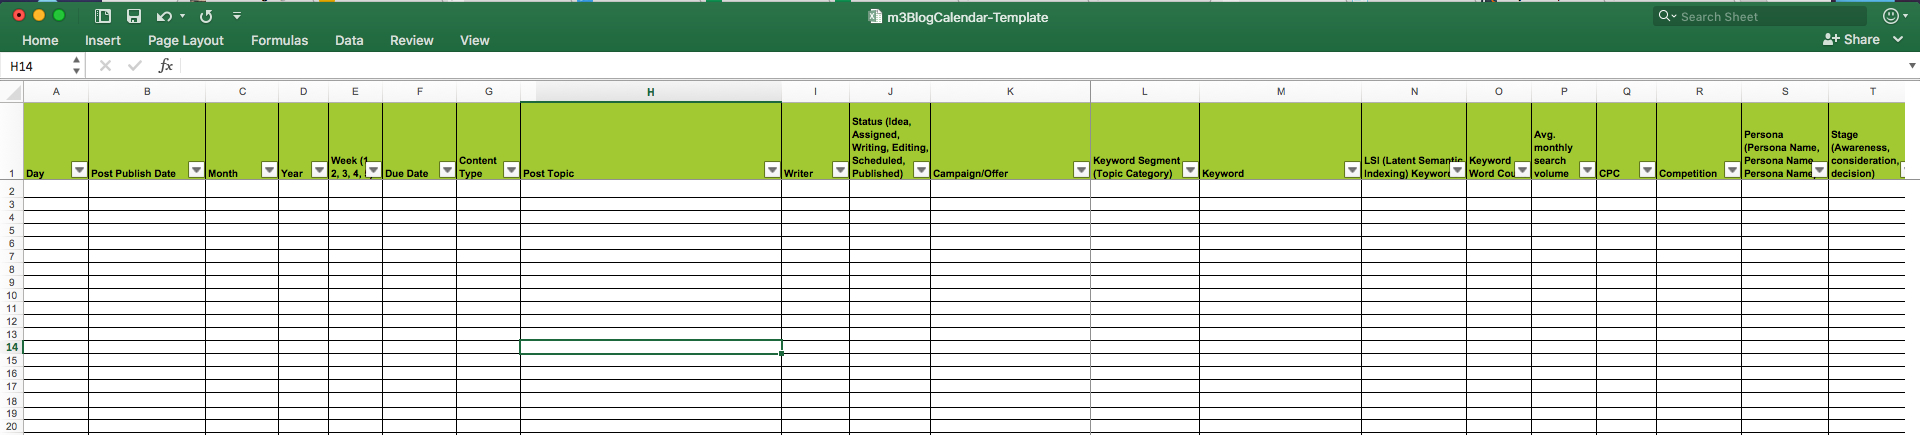 Editorial Calendar Templates For Content Marketing: The Ultimate List With Sample Excel Spreadsheet Templates